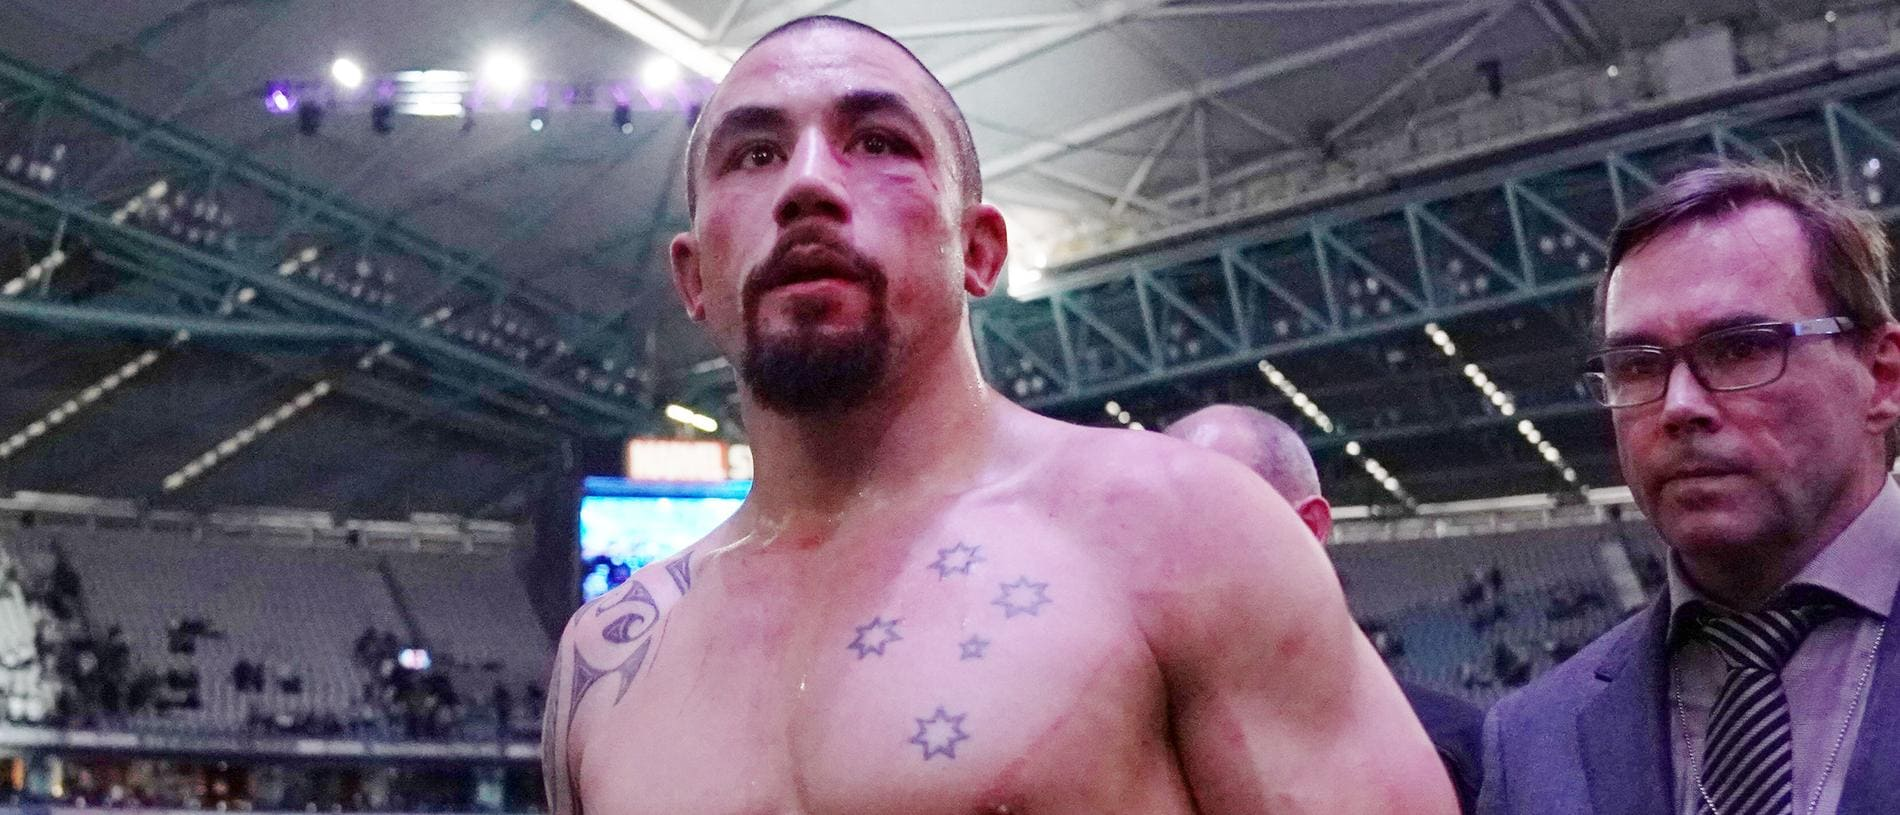 Robert Whittaker of Australia looks dejected after defeat against Israel Adesanya of New Zealand during UFC 243 at Marvel Stadium in Melbourne, Sunday, October 6, 2019. (AAP Image/Michael Dodge) NO ARCHIVING,EDITORIAL USE ONLY